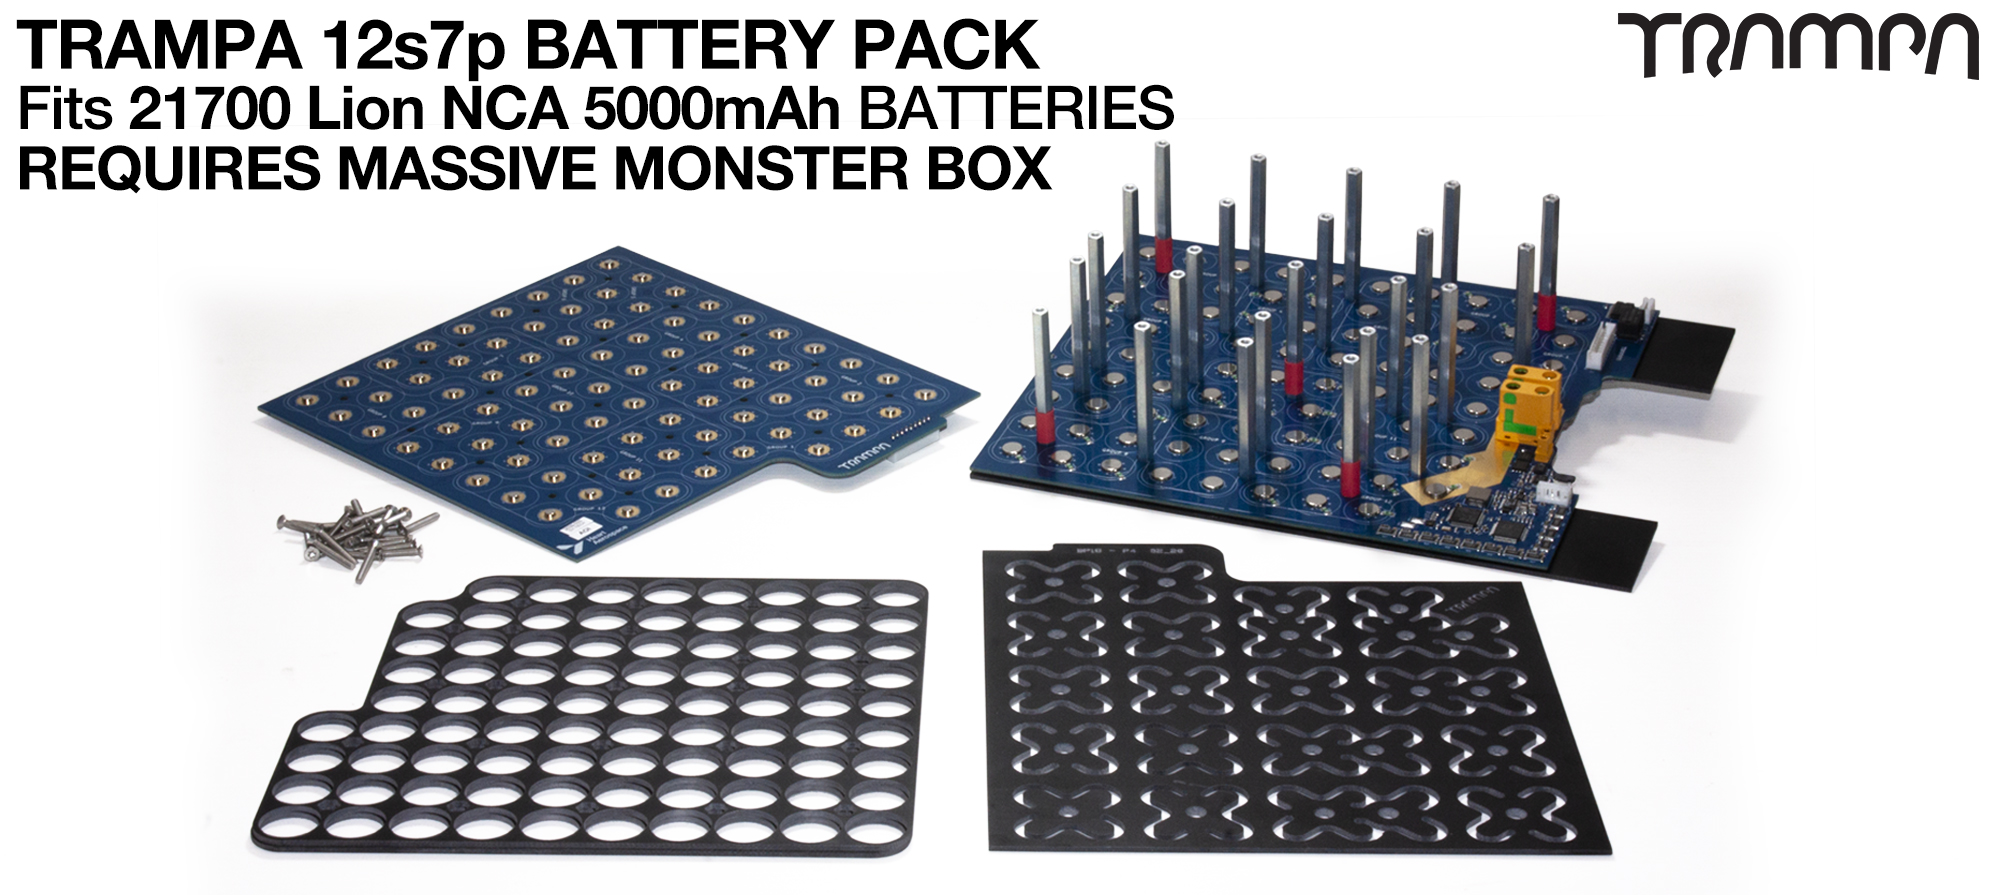 21700 PCB Pack with integrated BMS fits 84x 21700 cells (12s7p) to give 35A of range! Specifically made to work with TRAMPA's MASSIVE MONSTER Box fitting to TRAMPA Electric Decks but can be adapted to fit anything!!